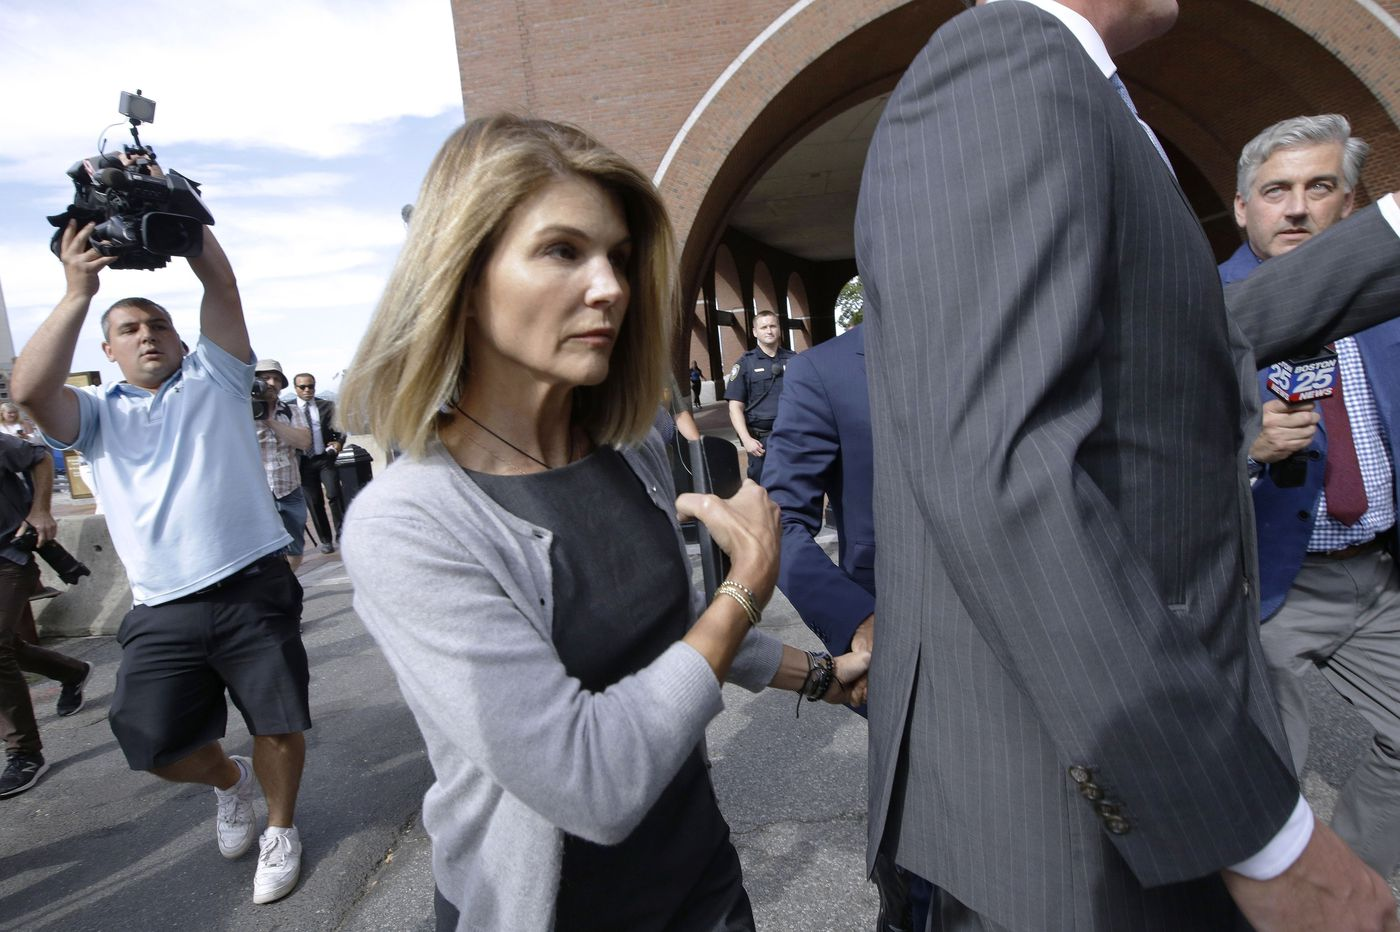 Lori Loughlin, and thousands of others sentenced to supervised release, is not getting an easy punishment | Opinion